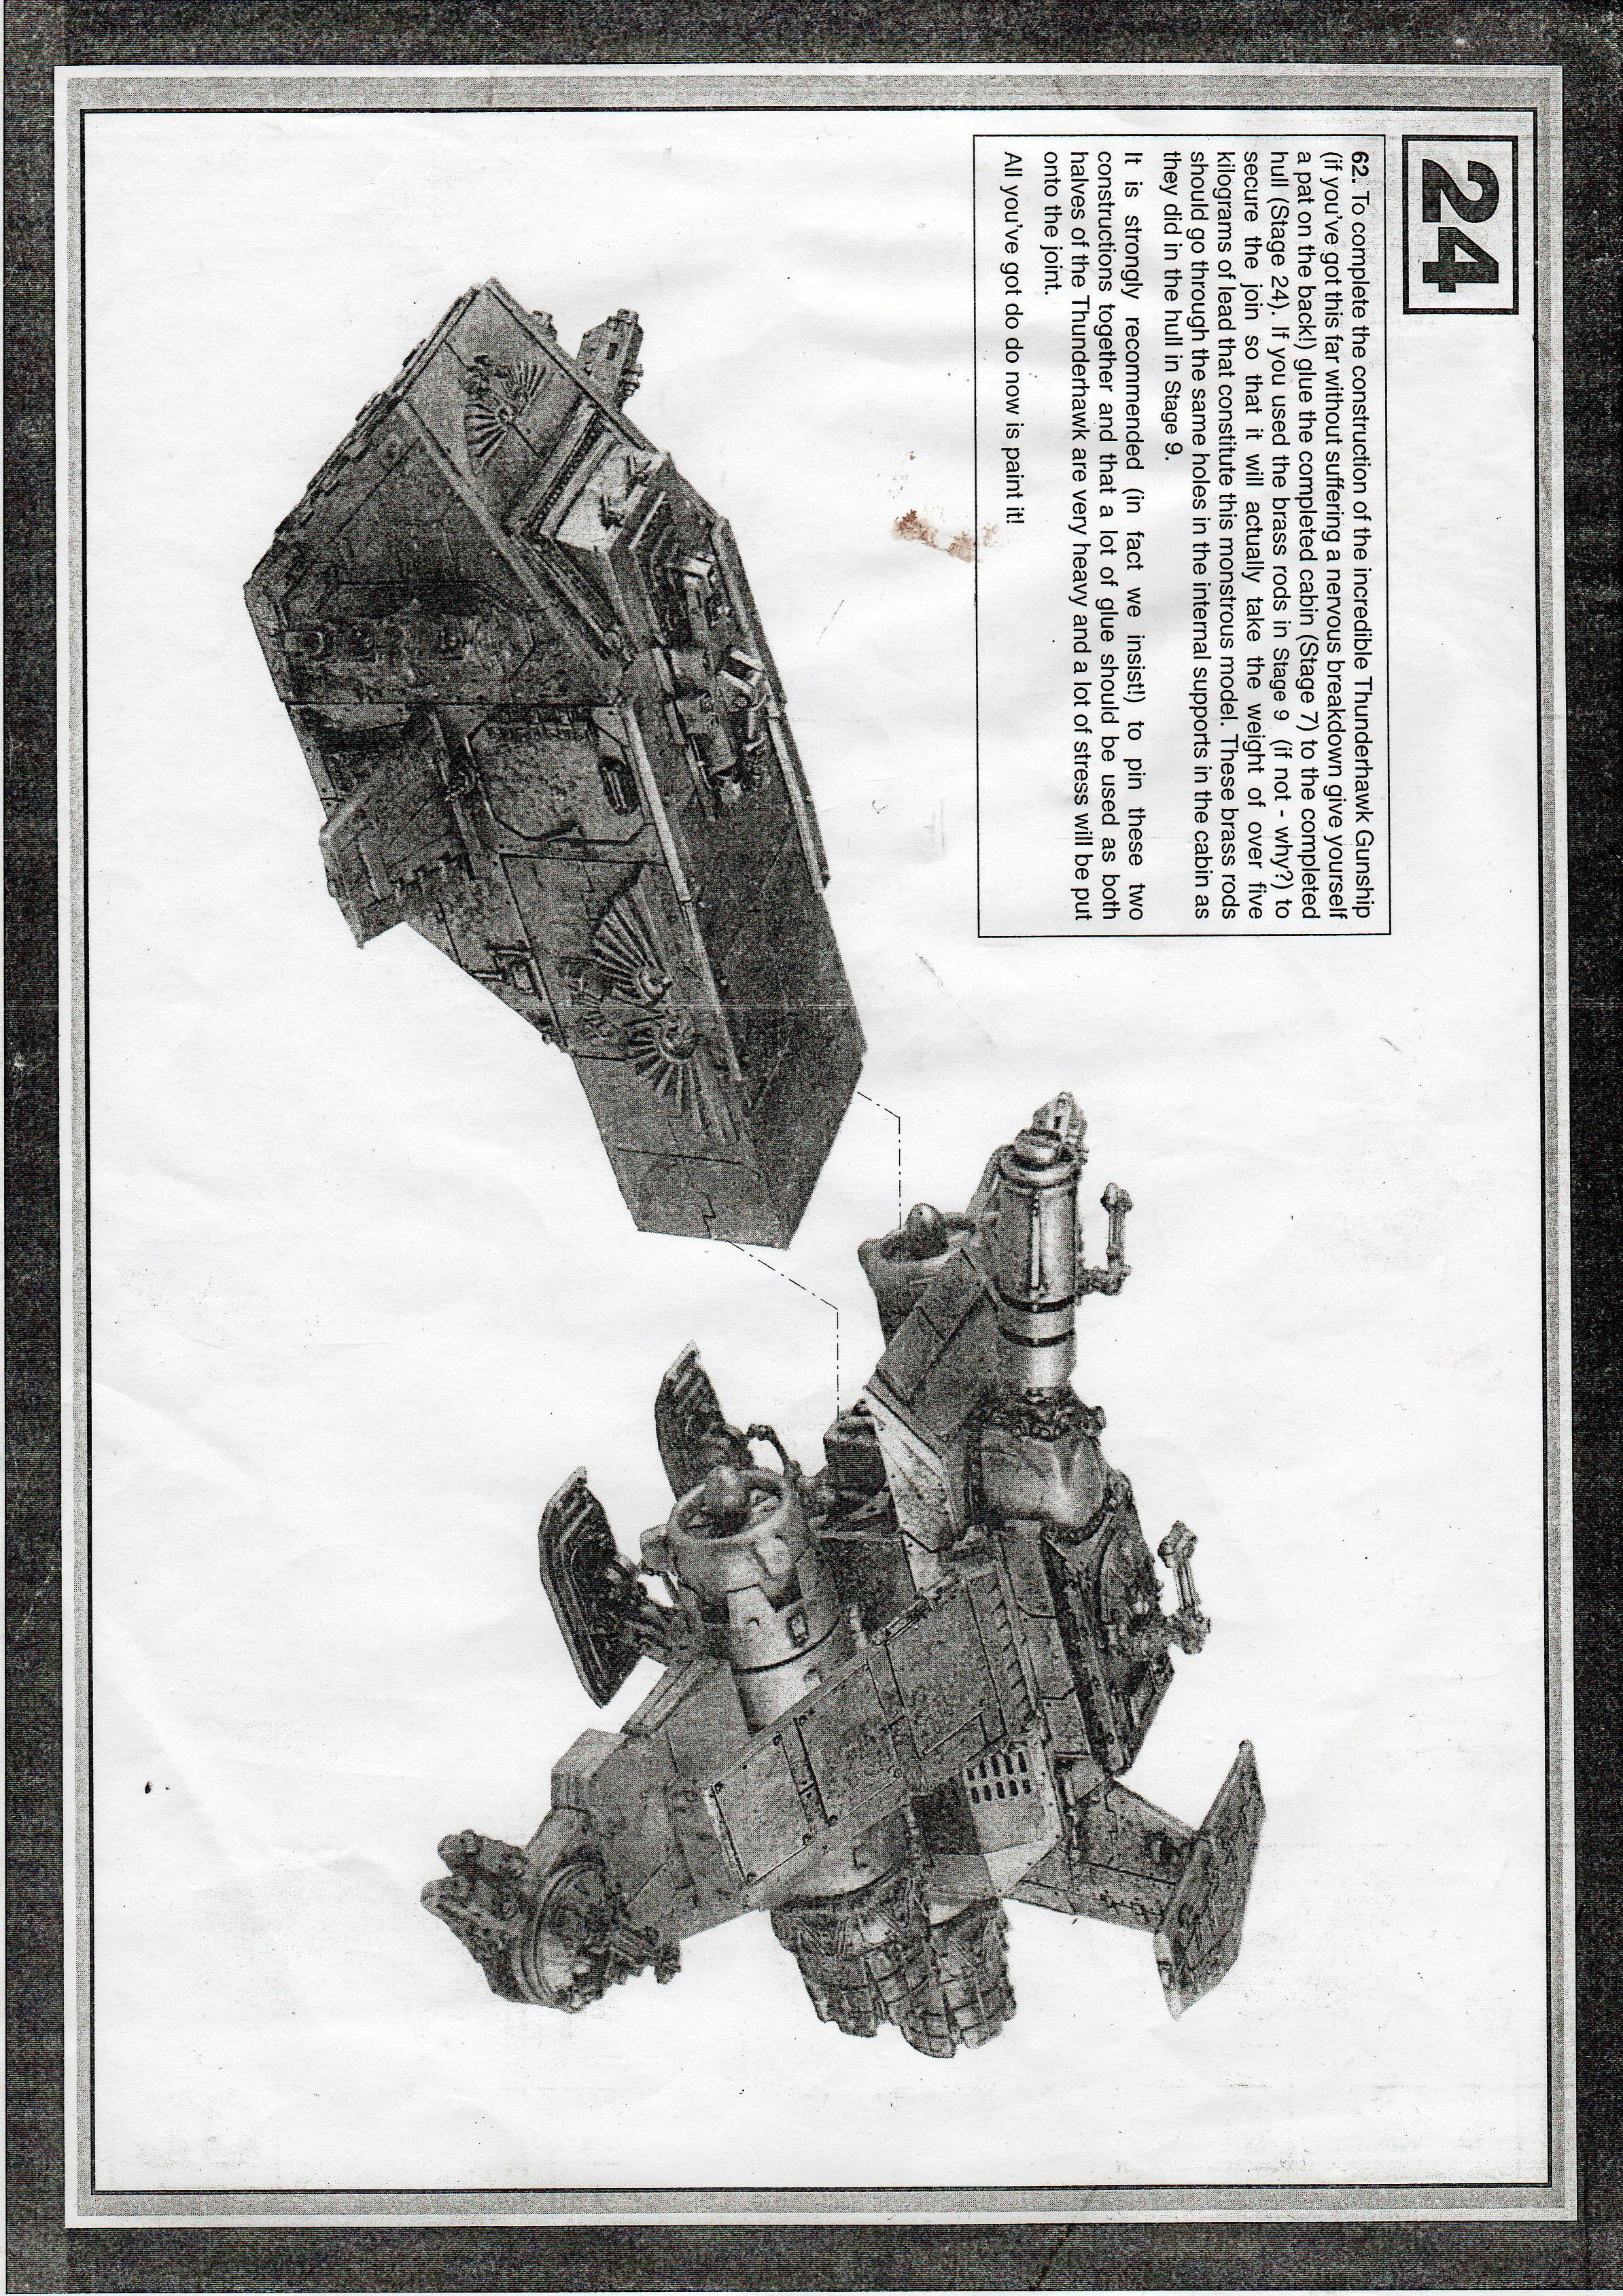 Instructions, Metal Thunderhawk, Space Marines, Thunderhawk